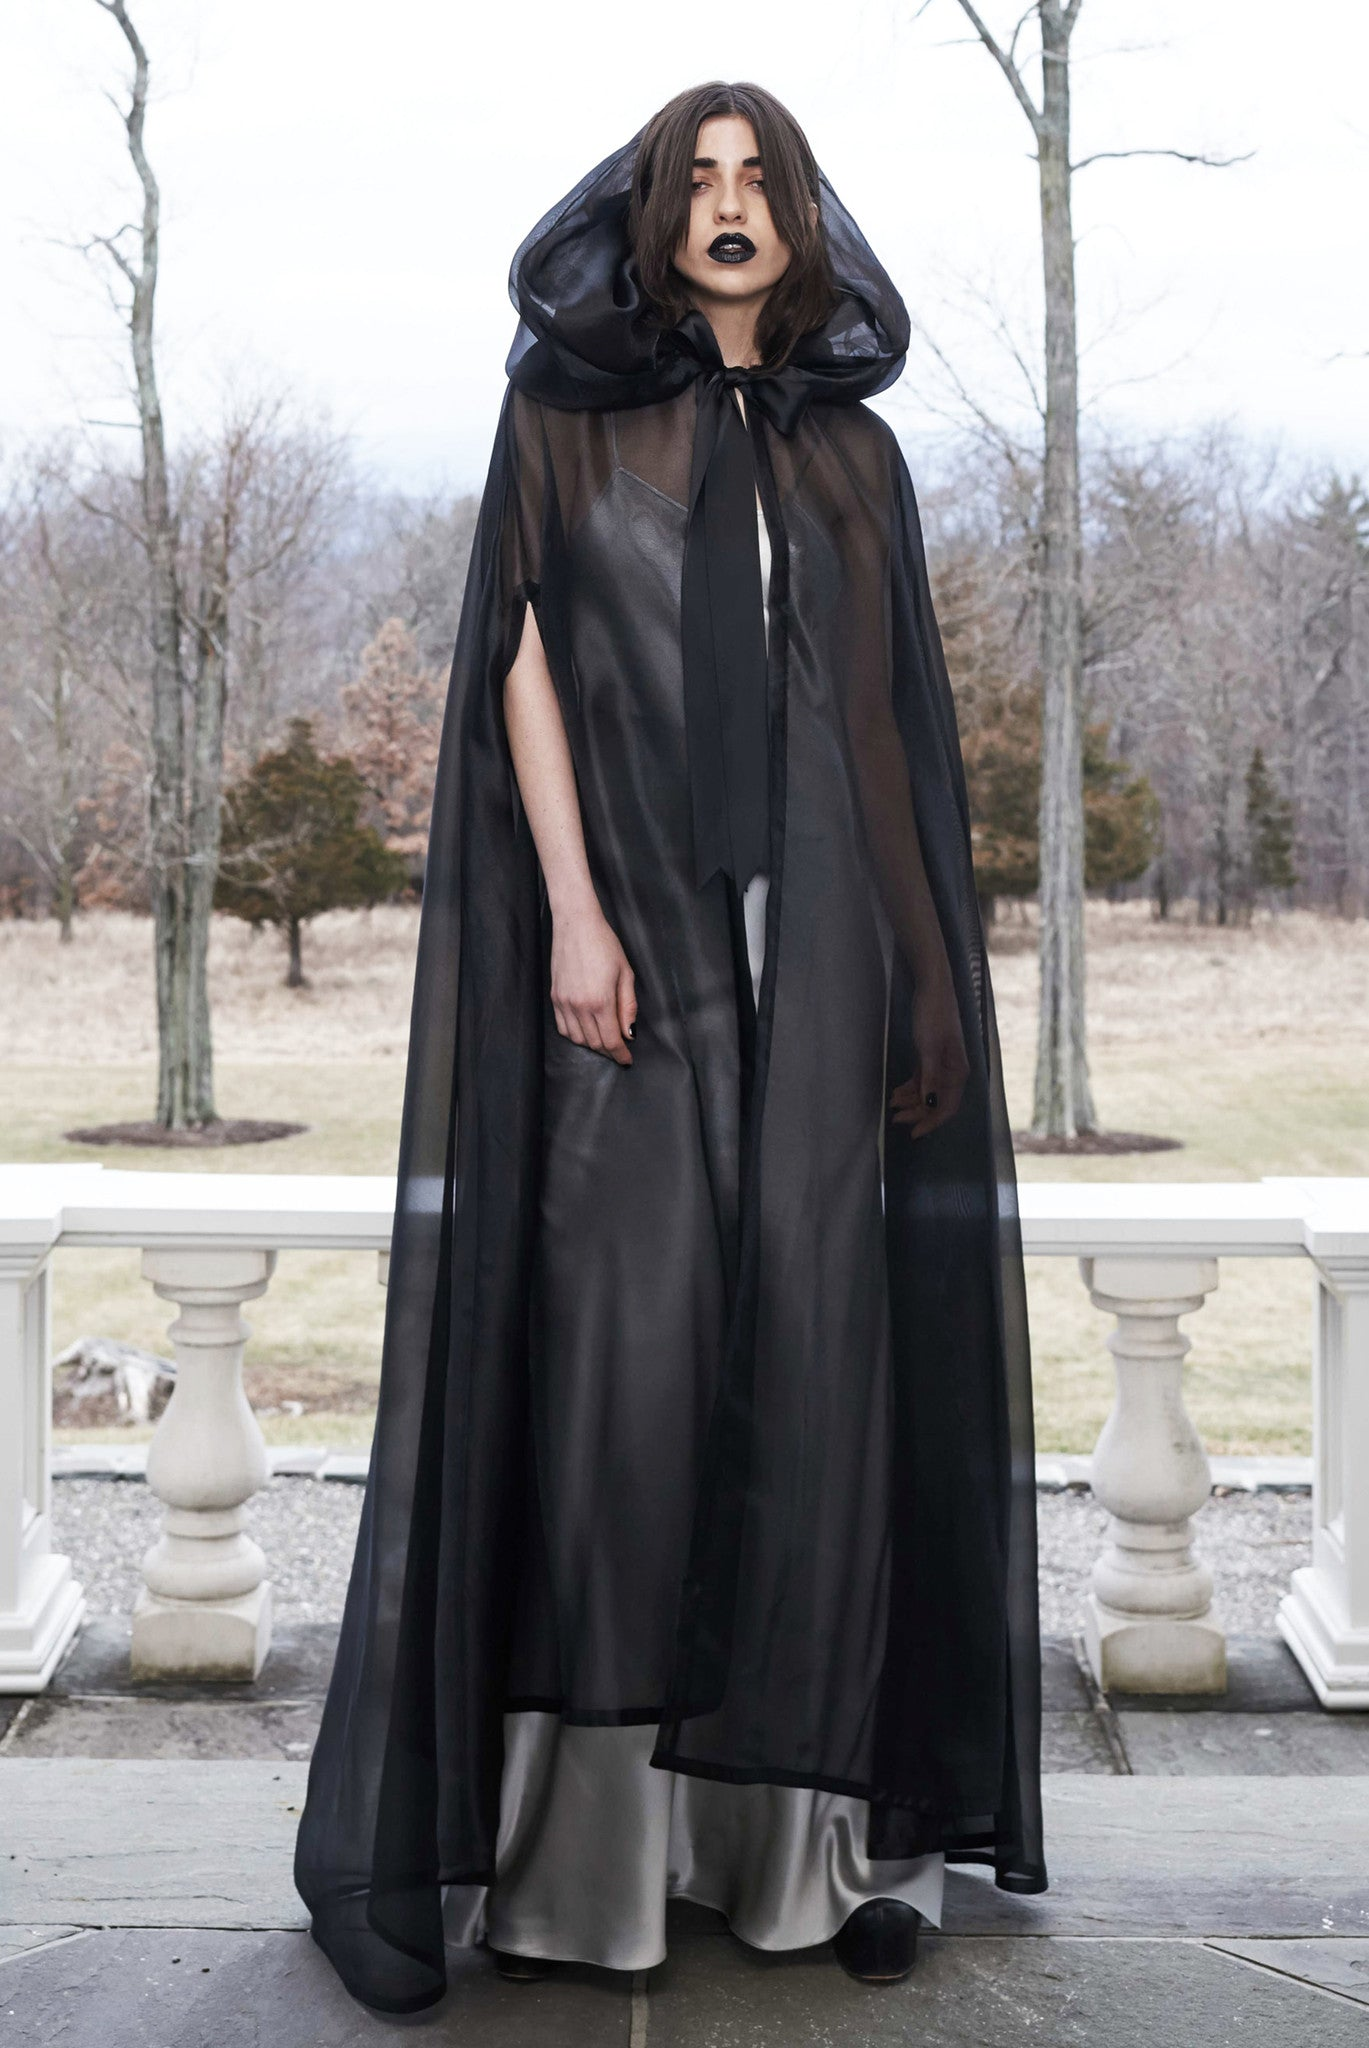 Vanessa M IMG Model Wendy Nichol Clothing Designer Fashion Show Runway 13 Incarnations Autumn Winter 2016 AW16  Handmade in NYC custom tailoring  Ghost Edwardian Black Sheer Organza Hooded Hood Cape Satin Bow Red Carpet Victorian